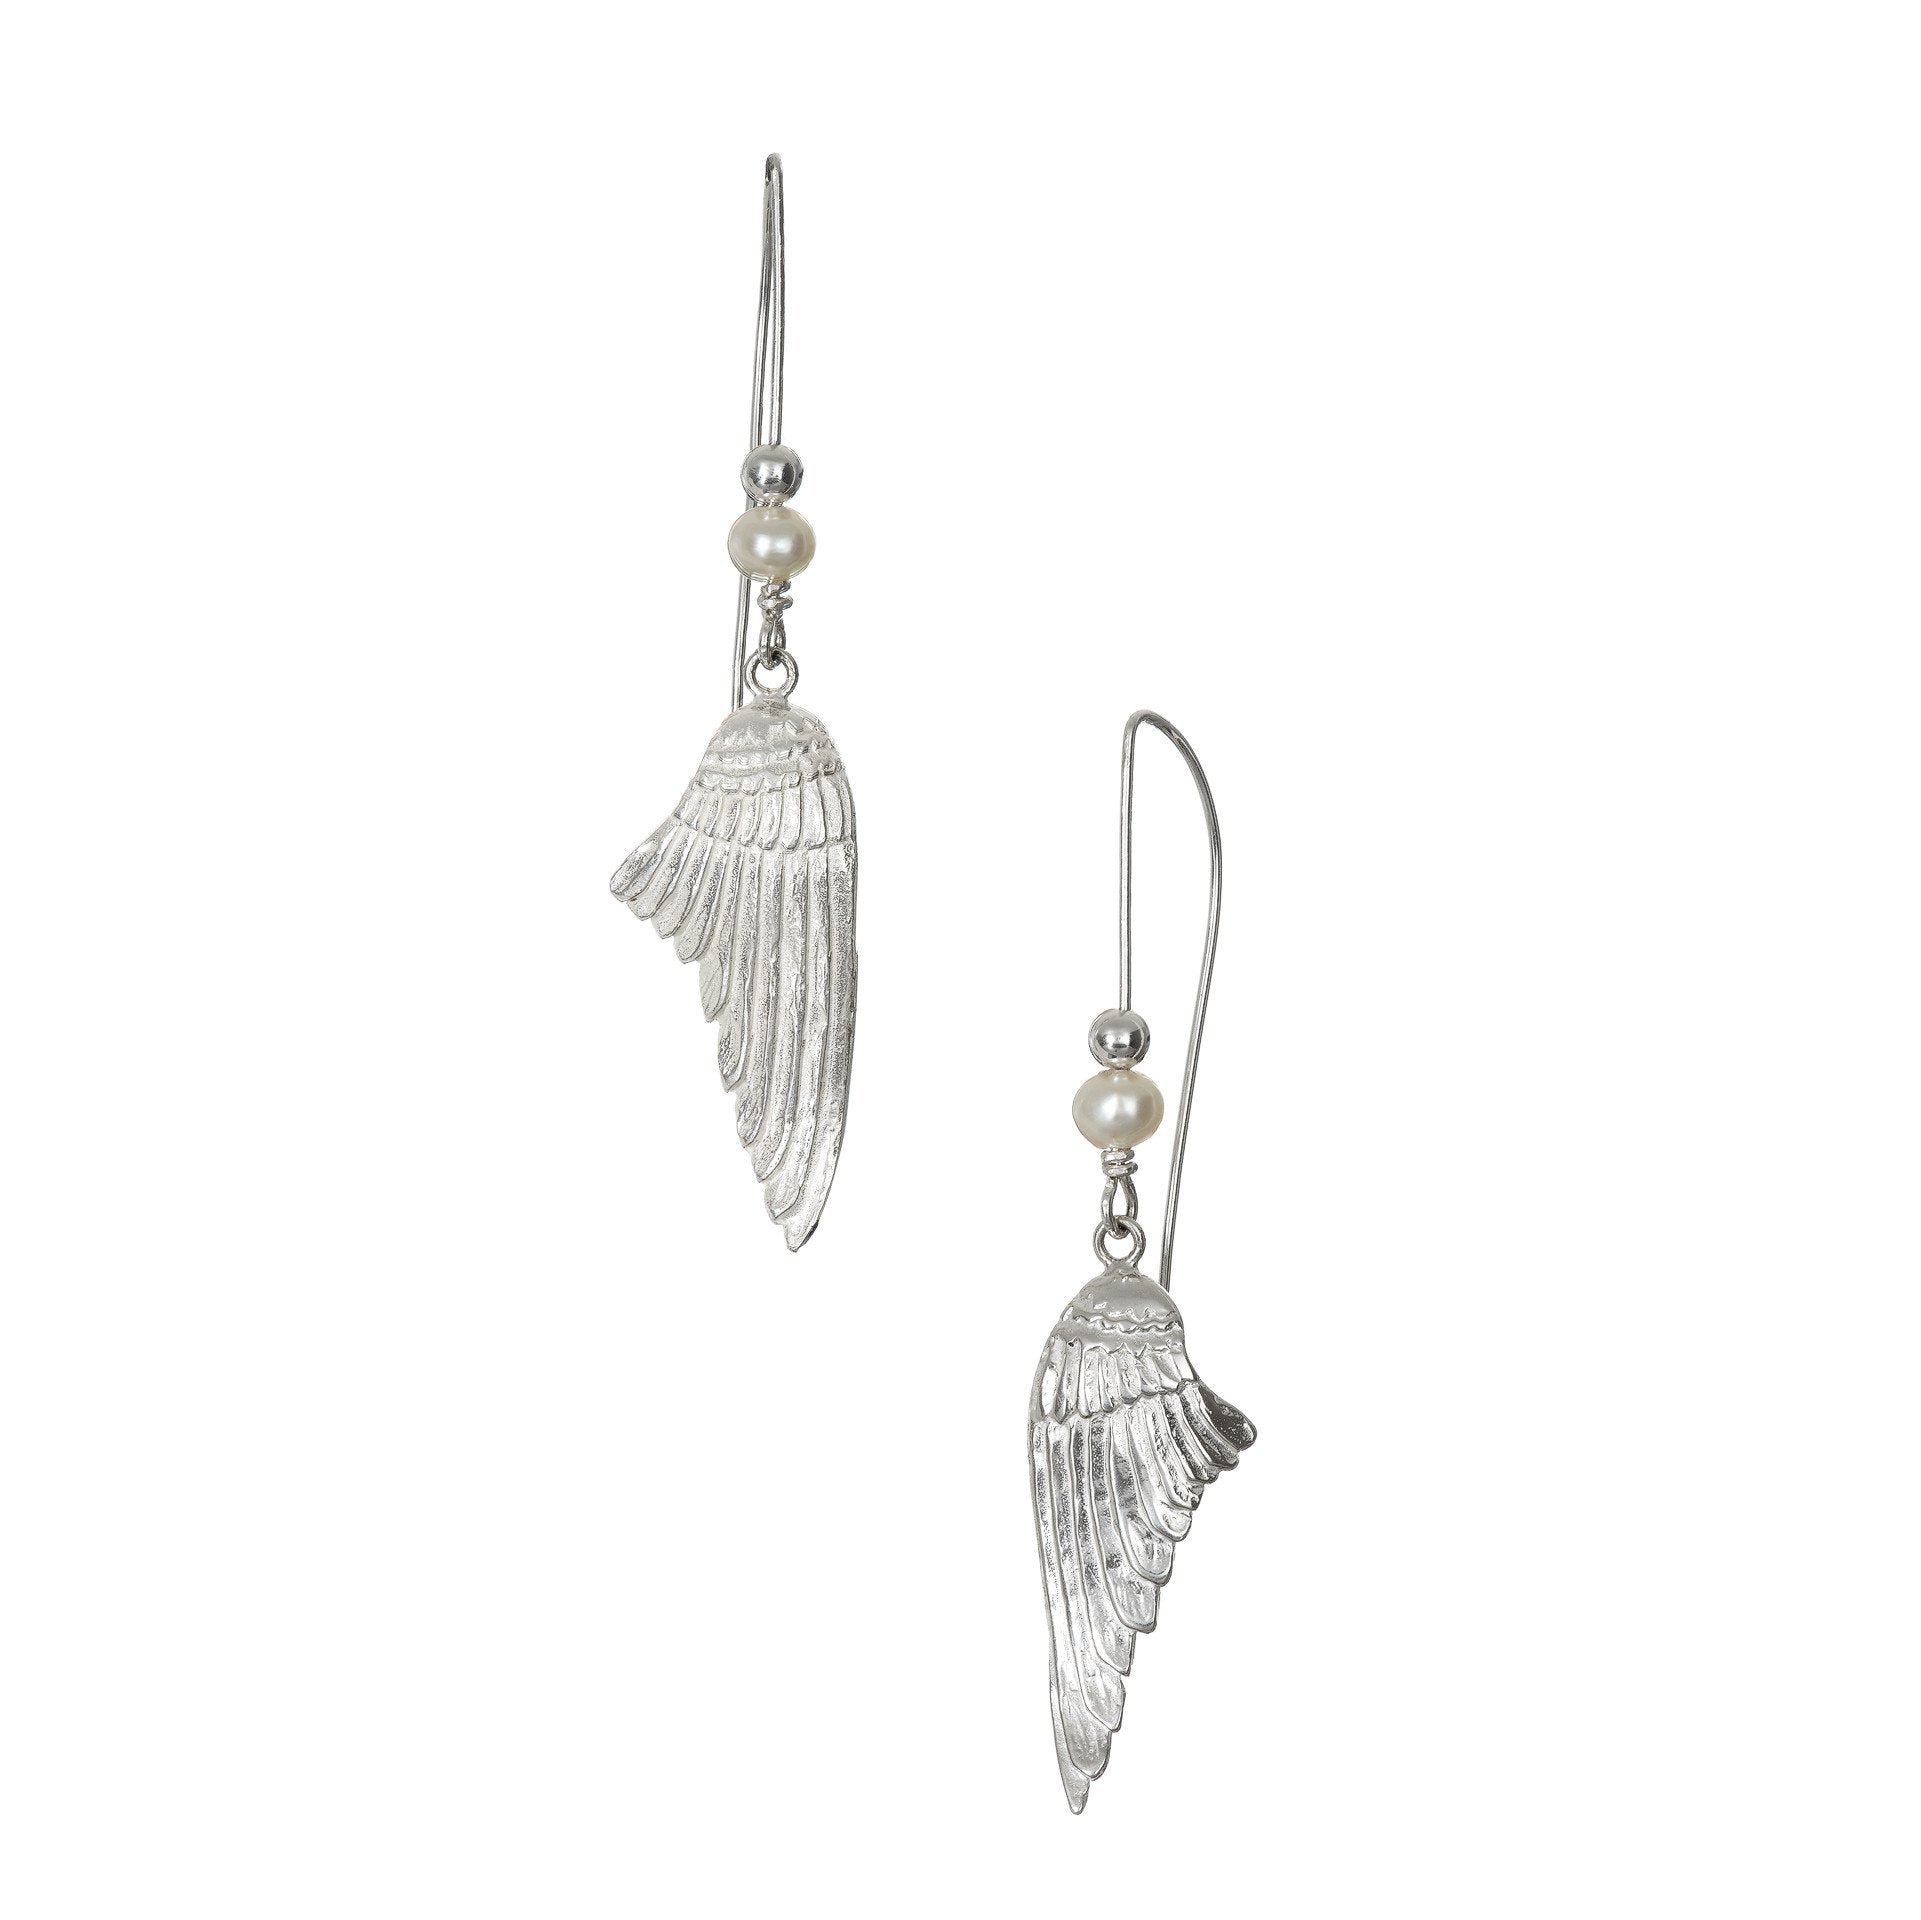 25d9a9f55 These sterling silver angel wing drop earrings handcrafted by Elena Brennan  Jewellery.